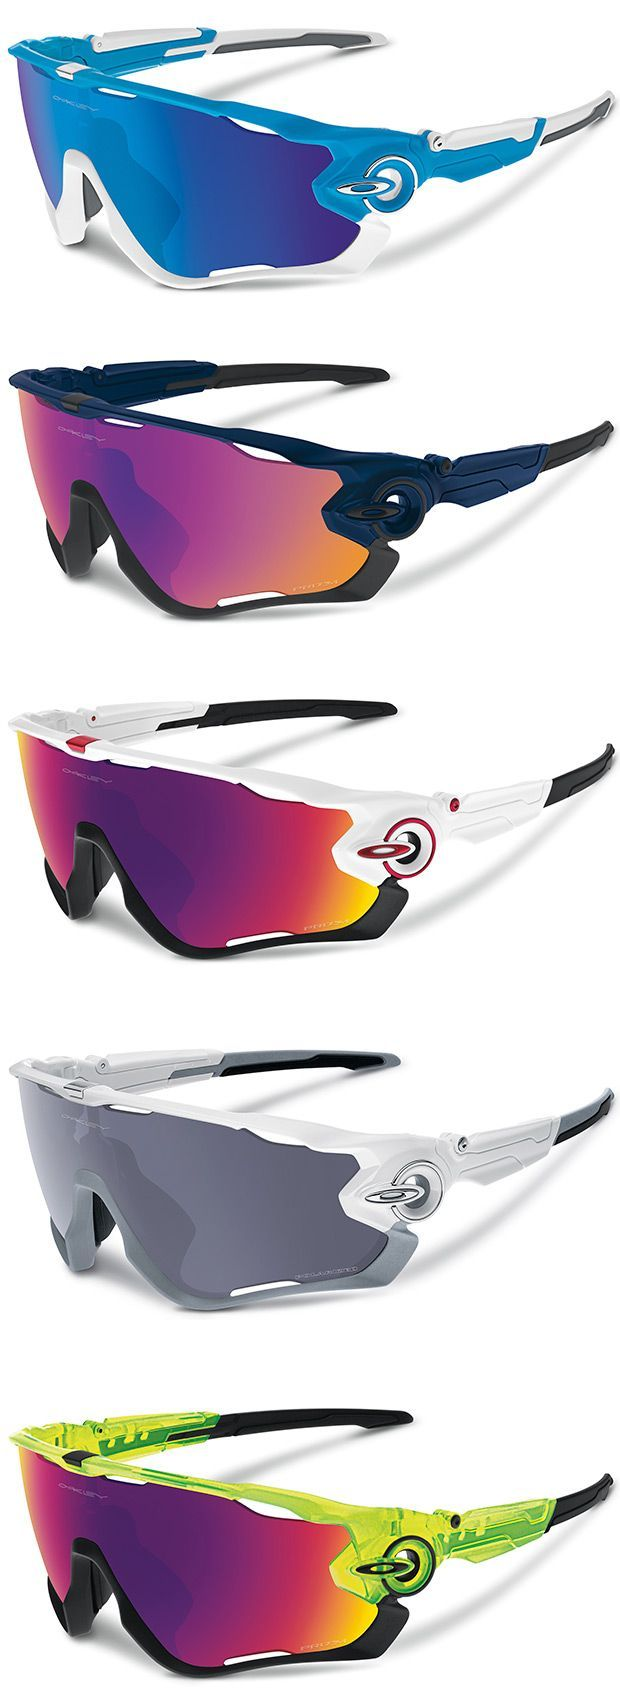 f19badd01e02df The 40 best Throw shades. images on Pinterest   Glasses, Oakley ...